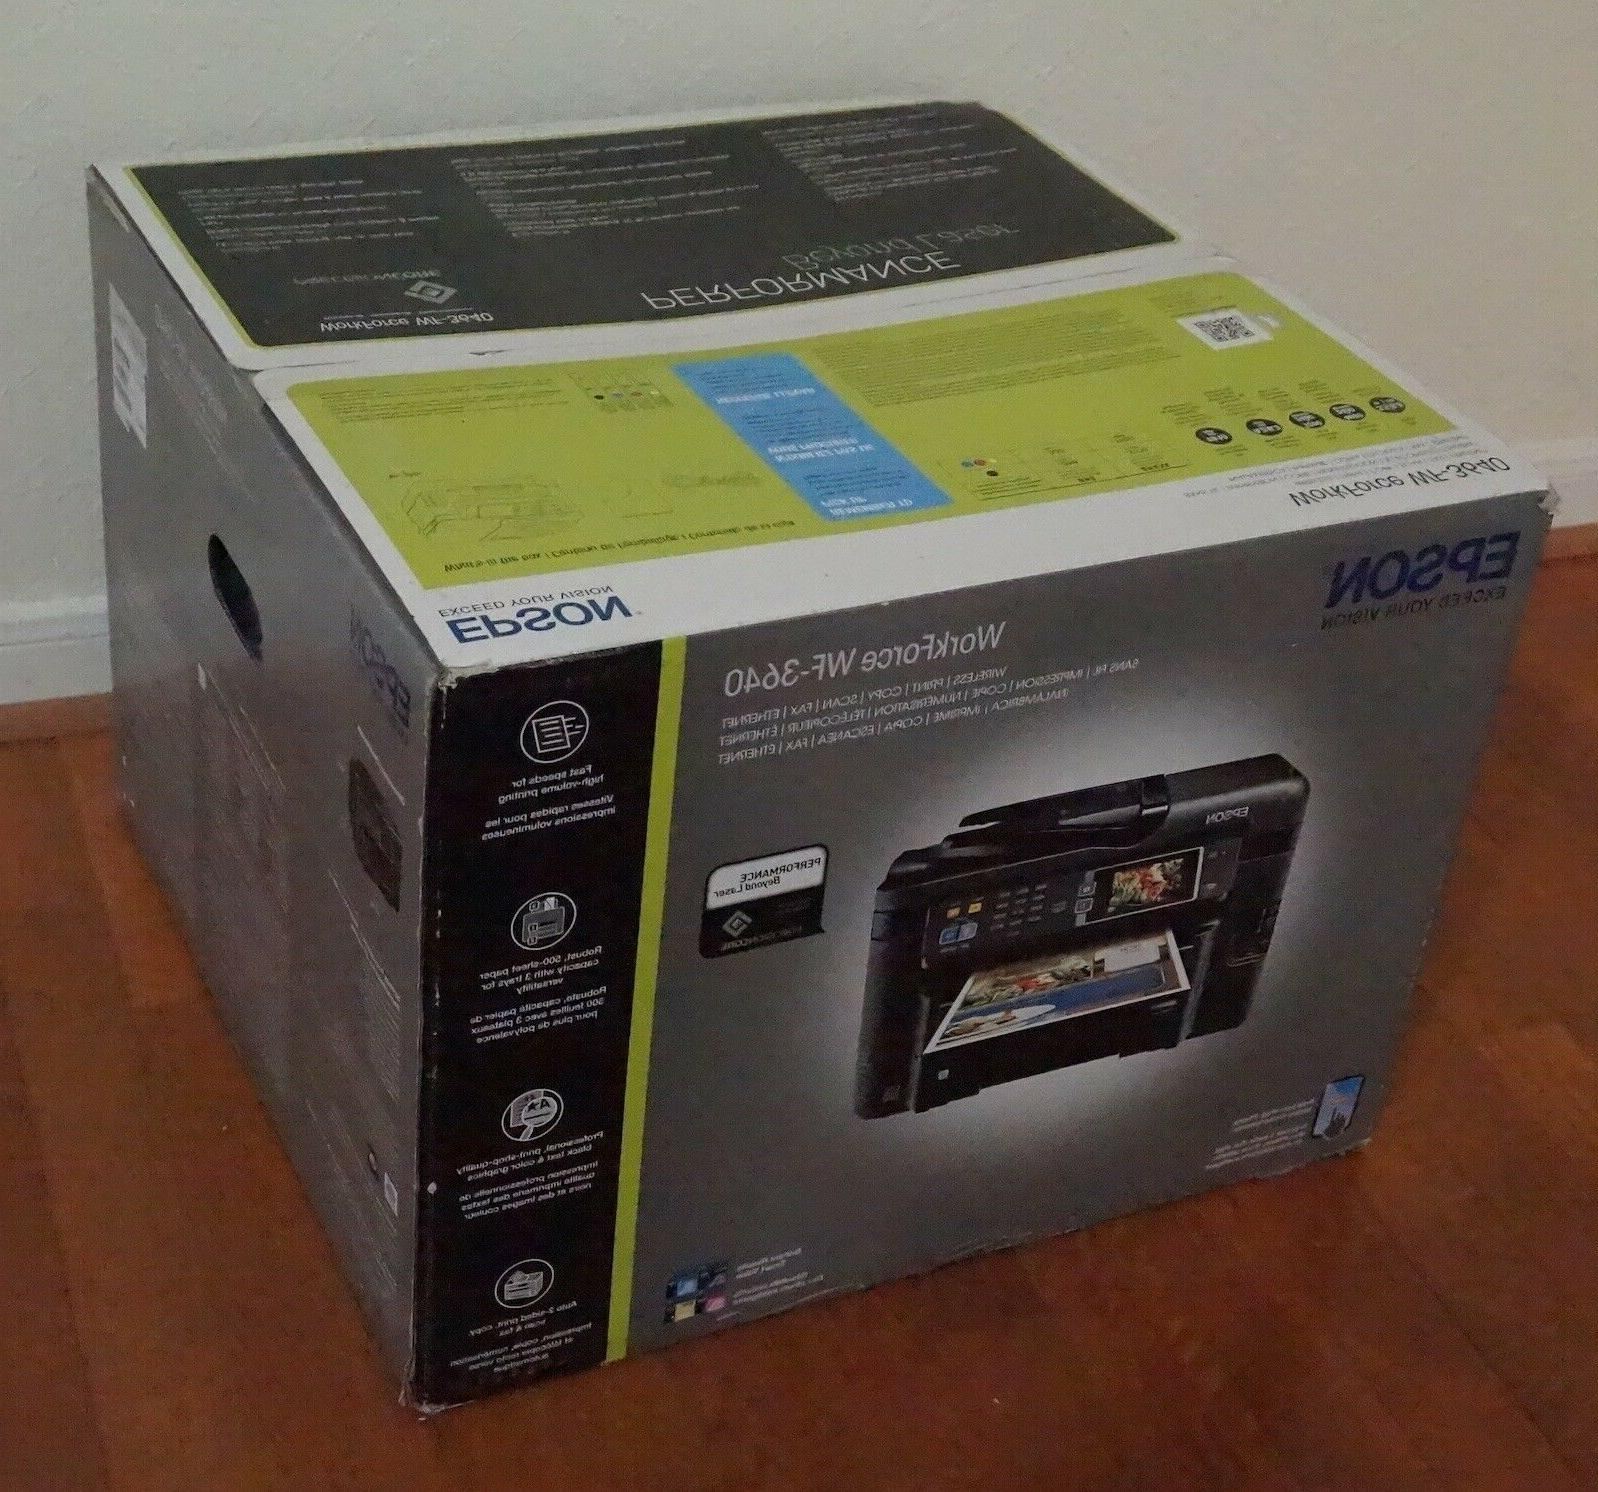 New in Epson WorkForce Wireless All-in-one Inkjet Printer with